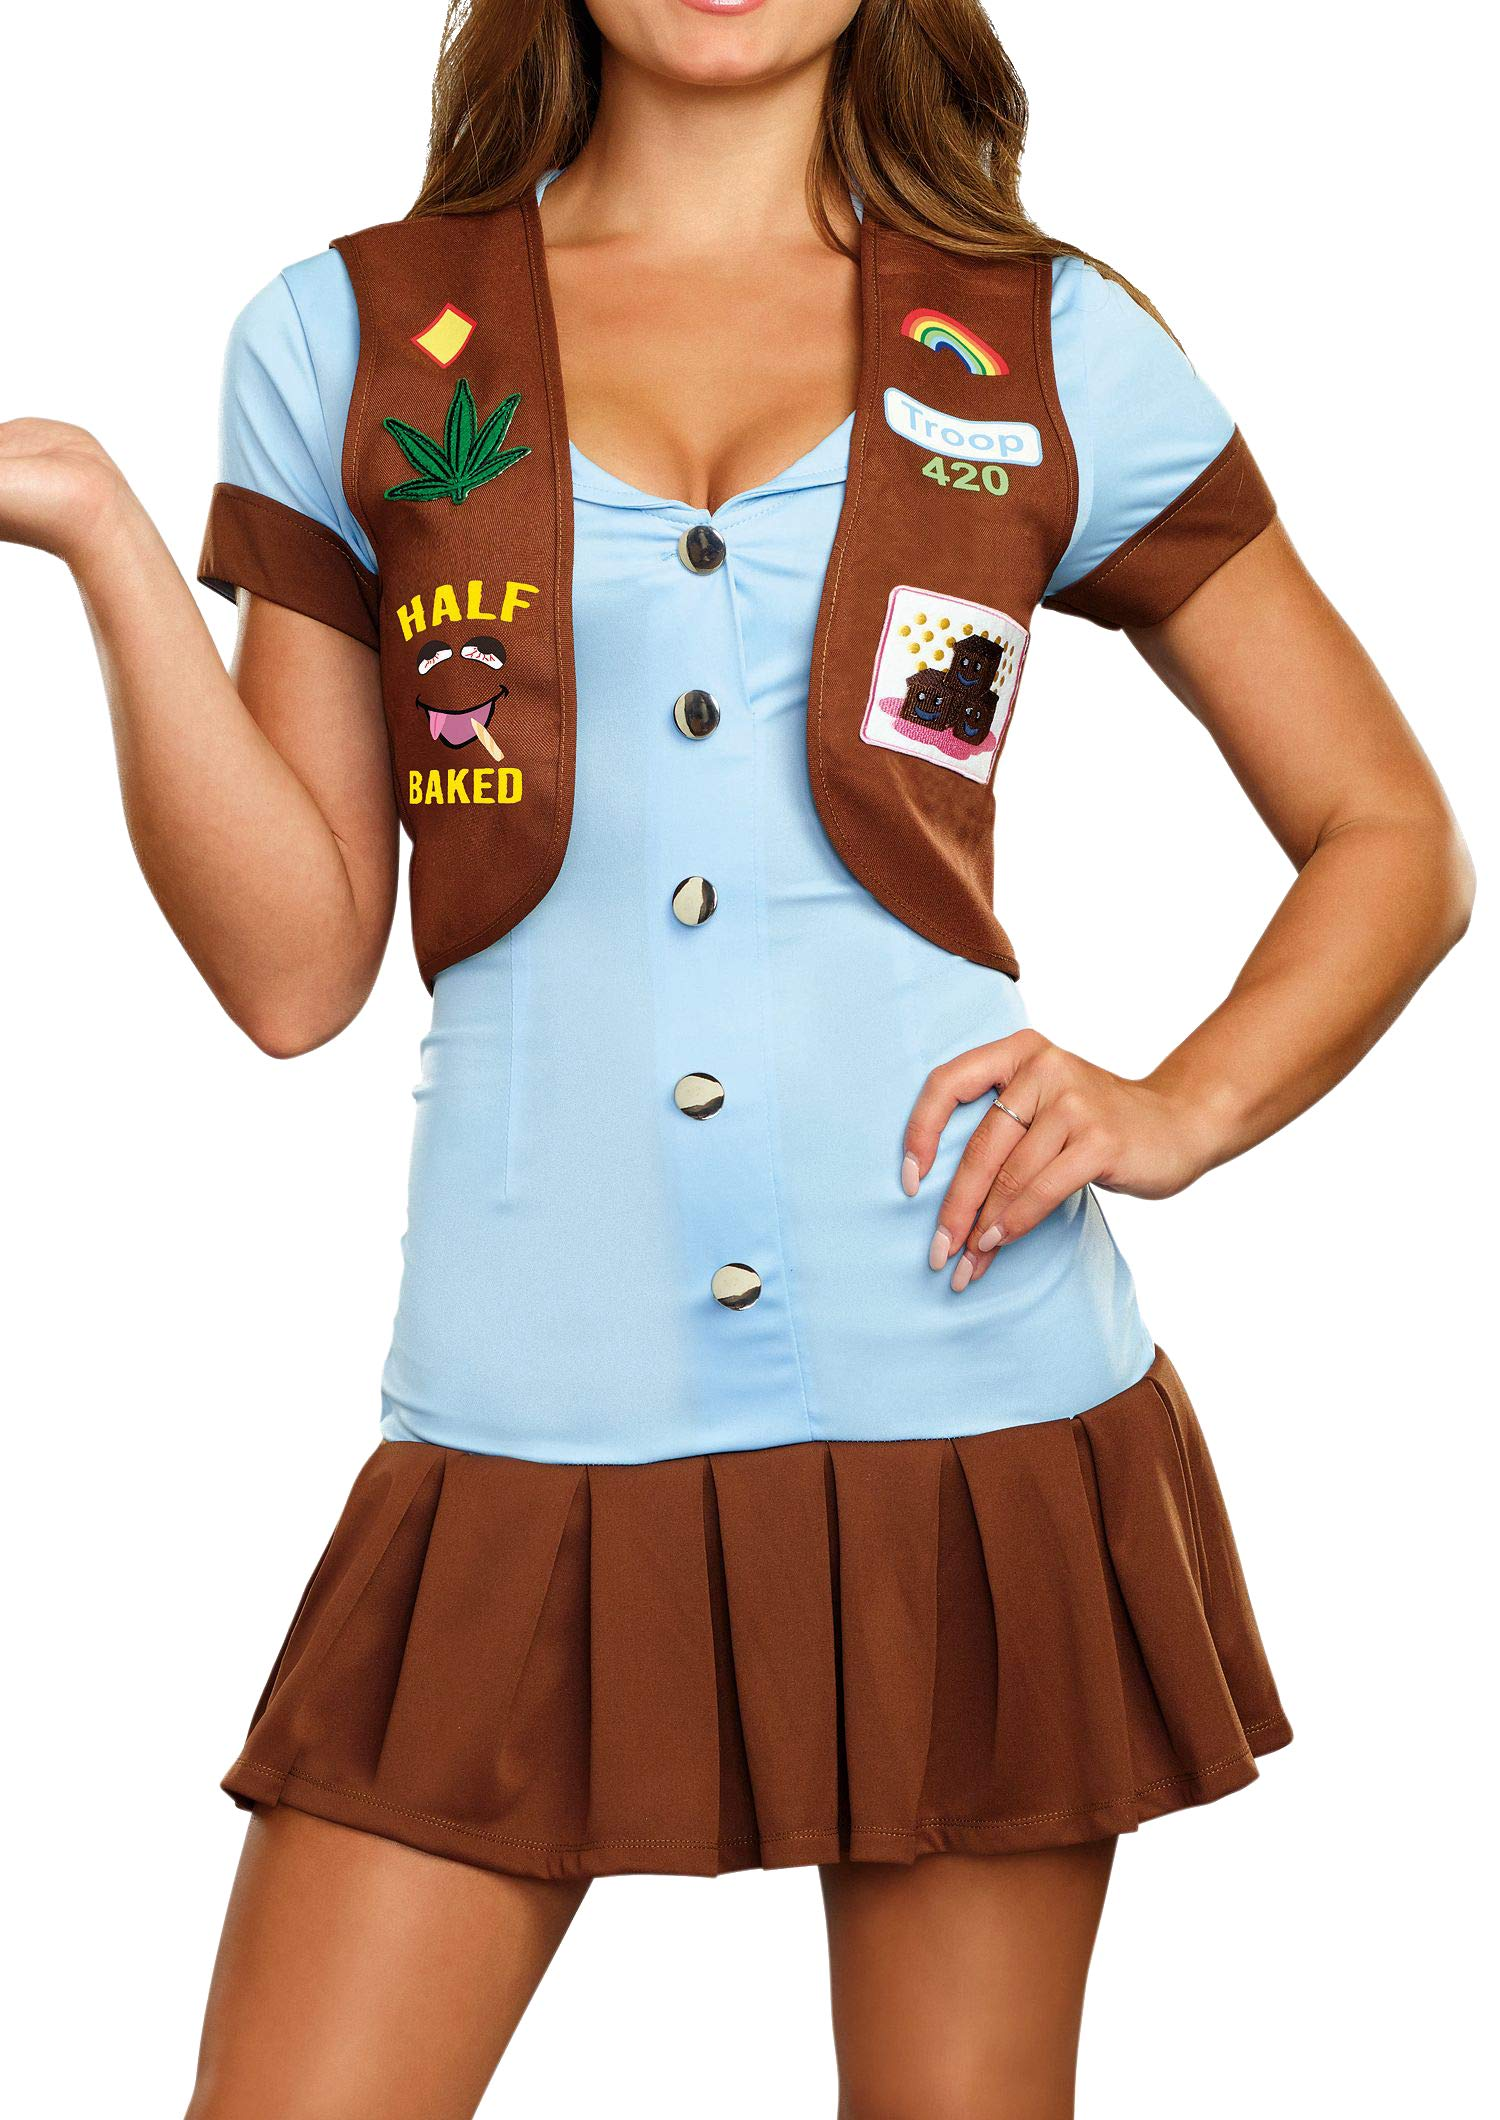 Dreamgirl Women's Cute Half-Baked 420 Scout Costume, Multi, Medium by Dreamgirl